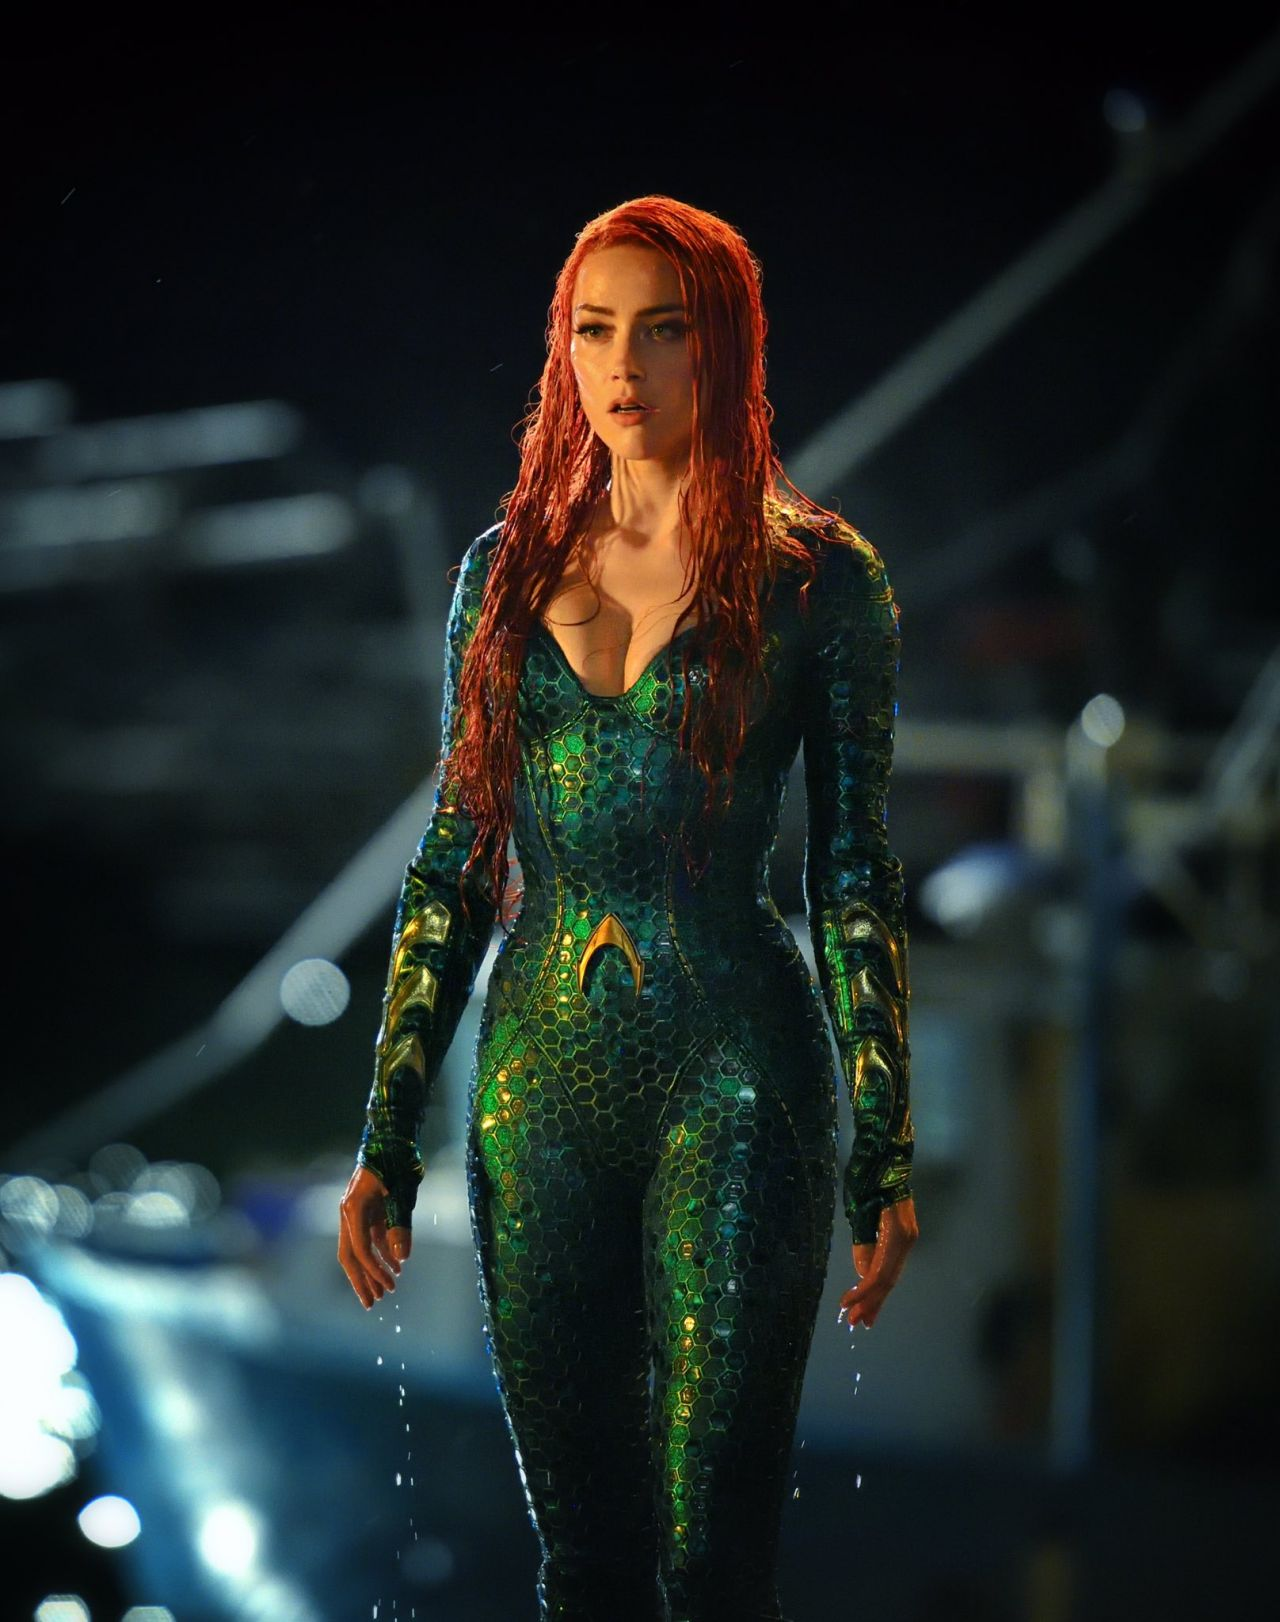 Amber Heard - Aquaman Movie Photos (2018) Amber Heard Movies